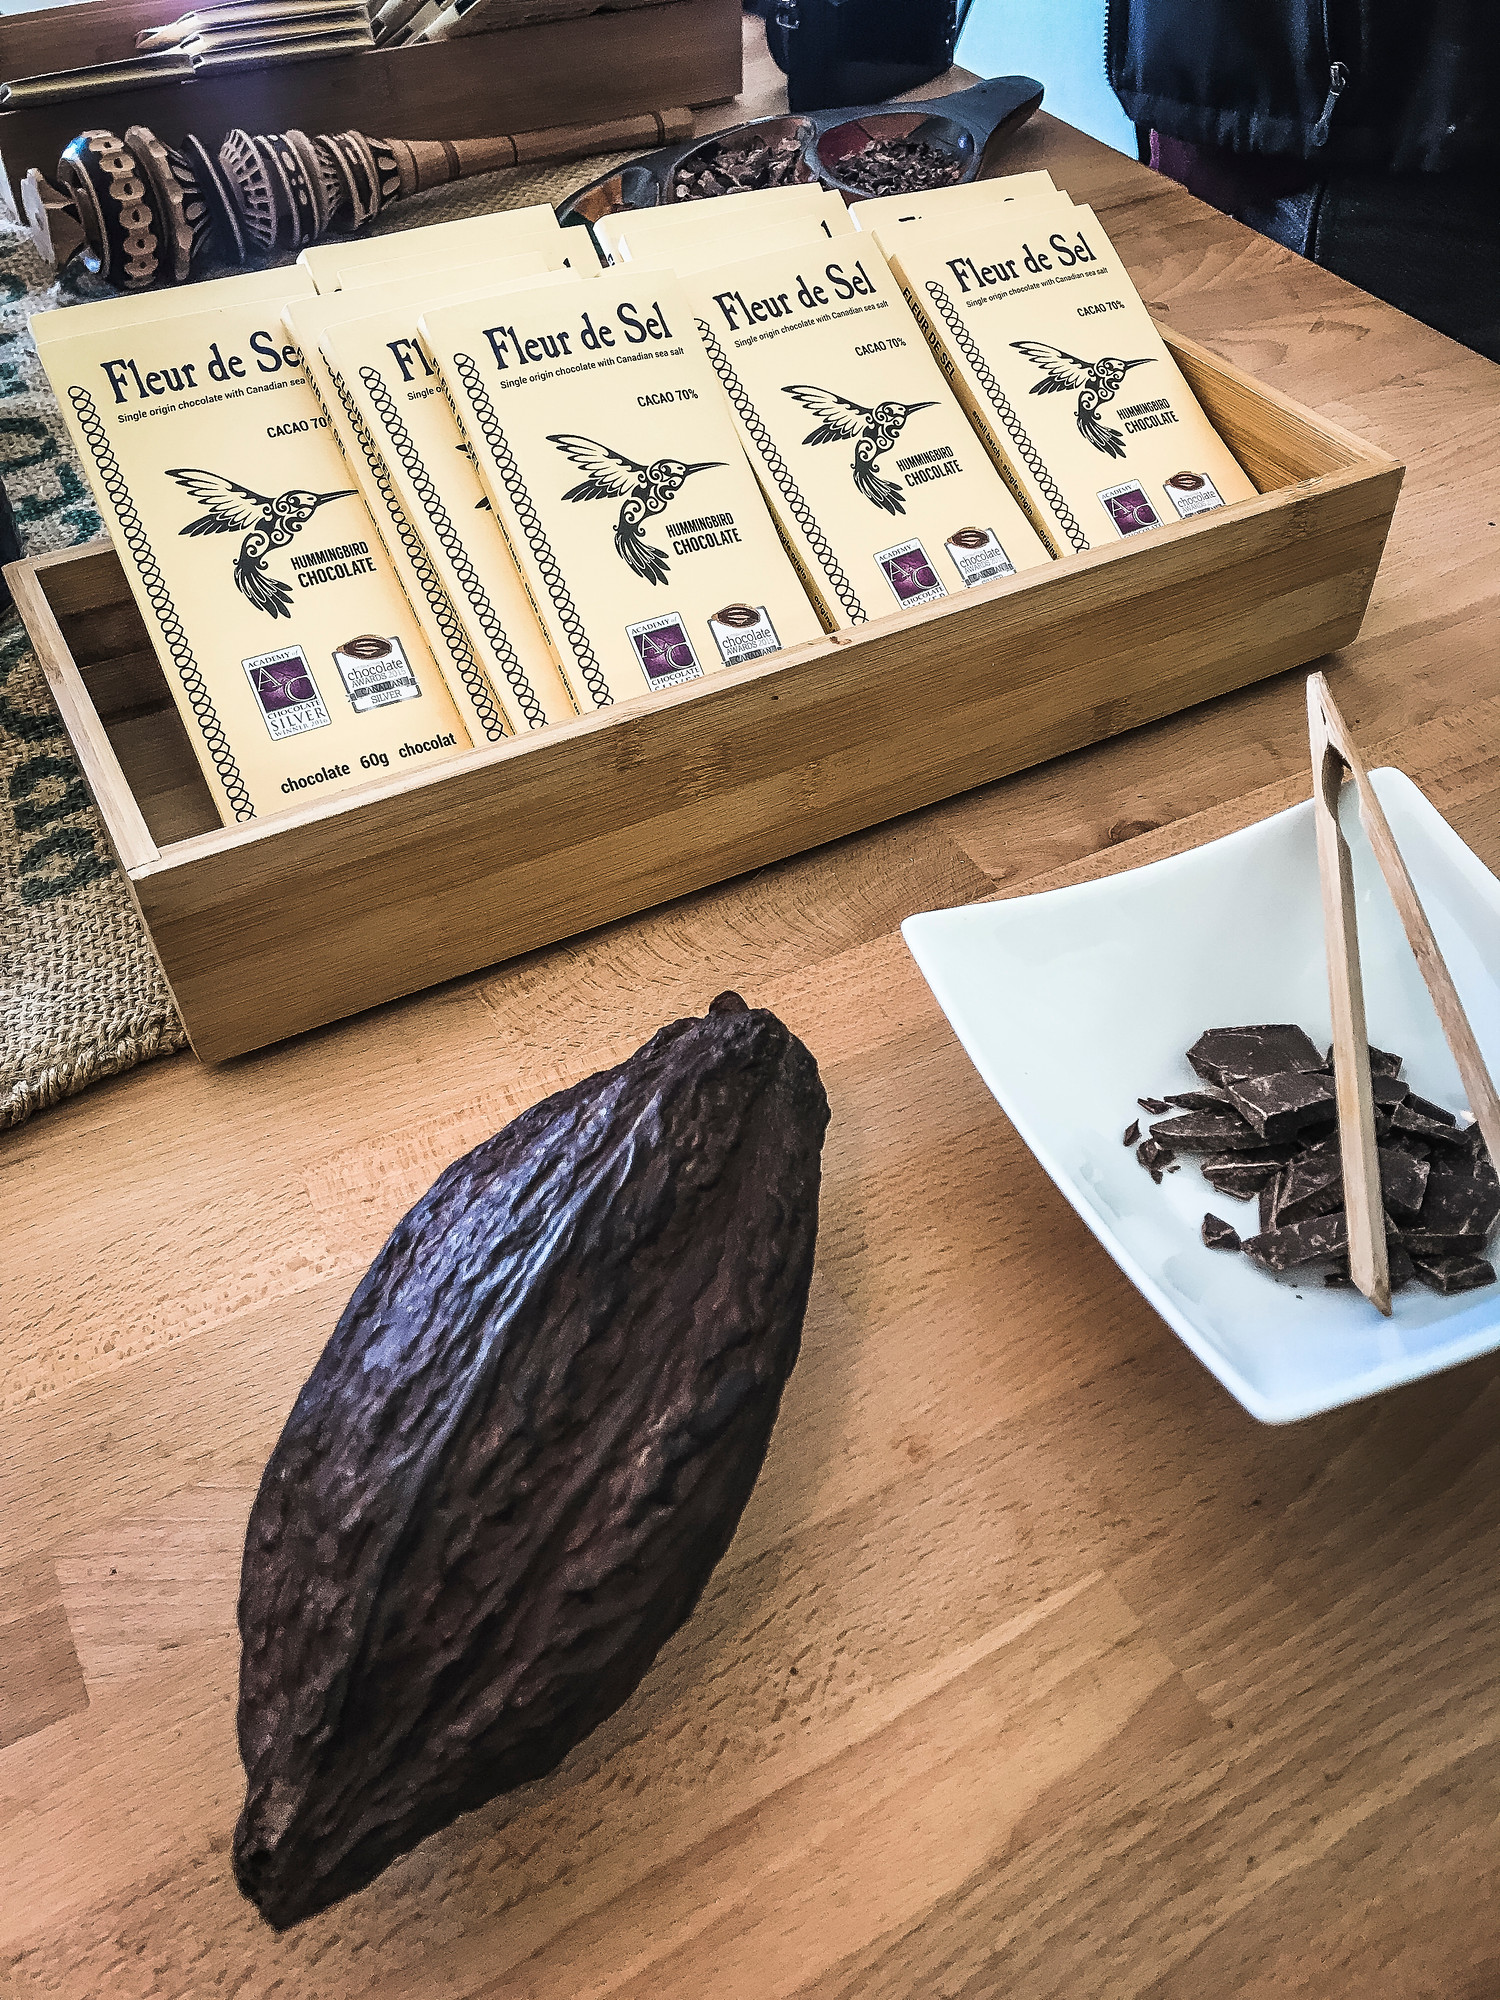 Hummingbird Chocolate in Almonte Ontario is a small batch award-winning chocolate maker.